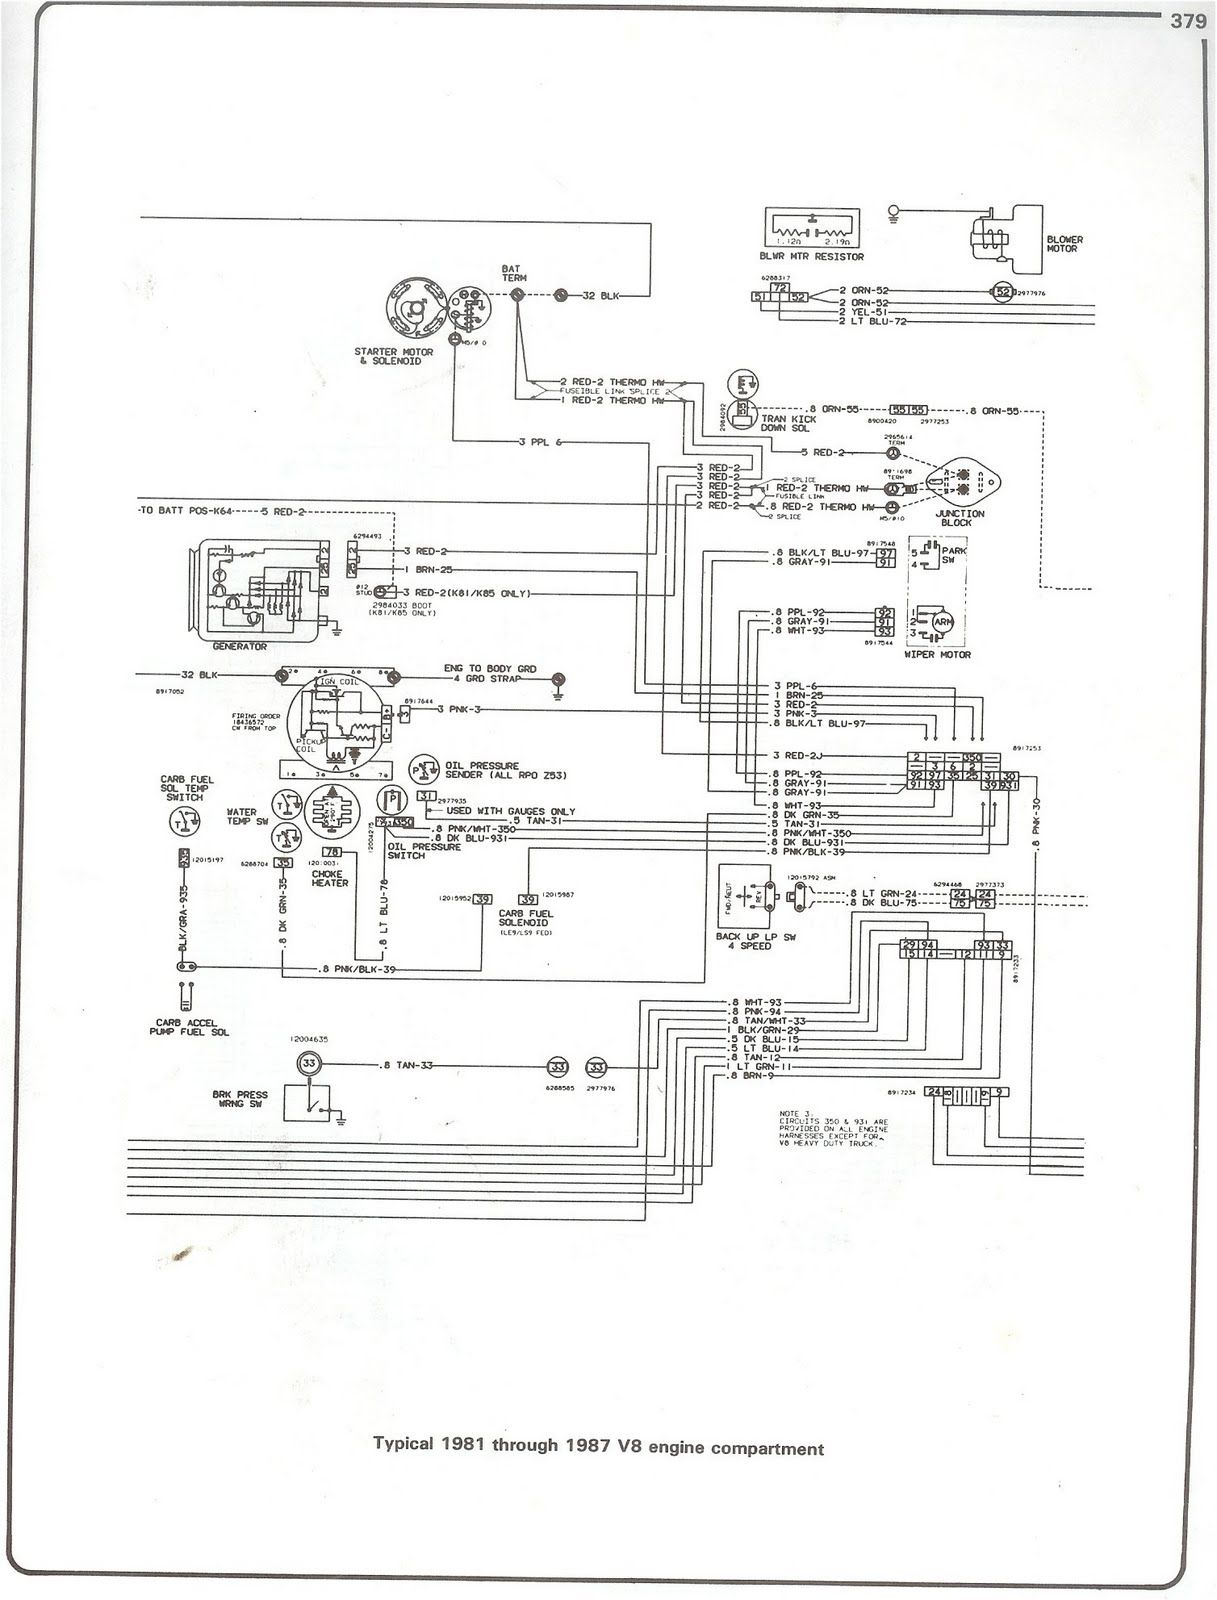 small resolution of this is engine compartment wiring diagram for 1981 trough 1987 chevrolet v8 truck description from autowiringdiagram blogspot com